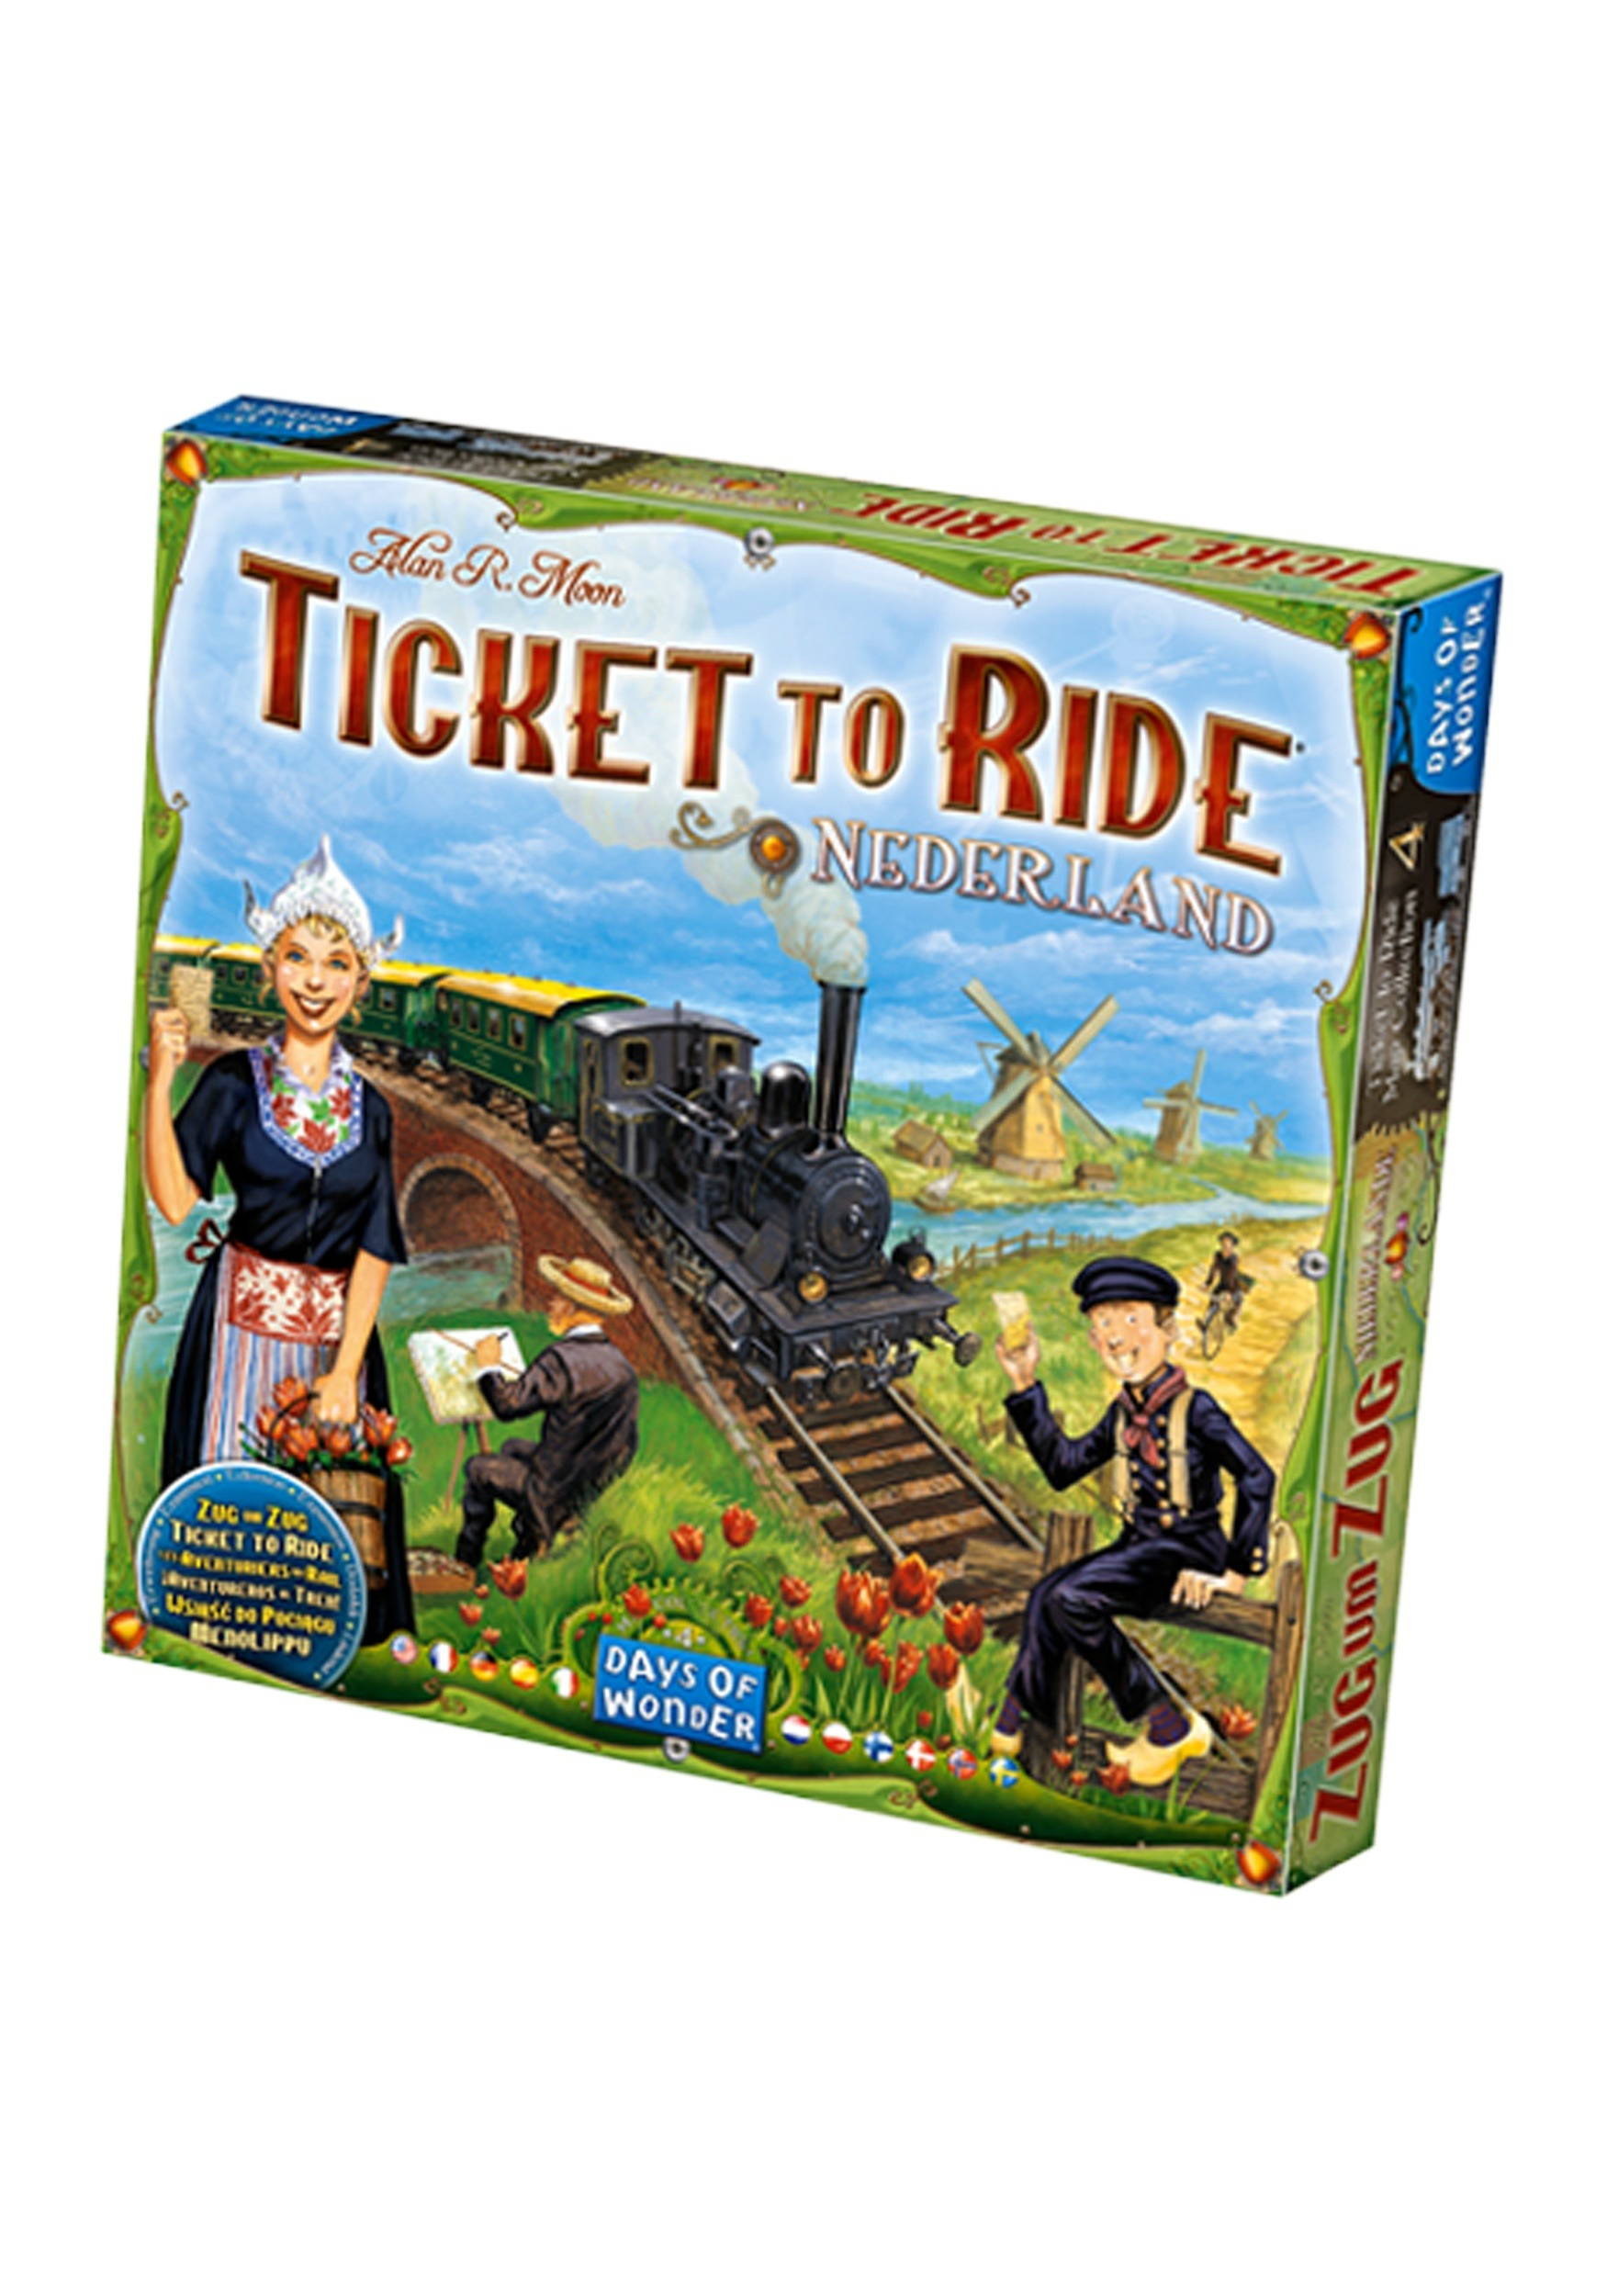 Ticket to Ride: Nederland Board Game Expansion